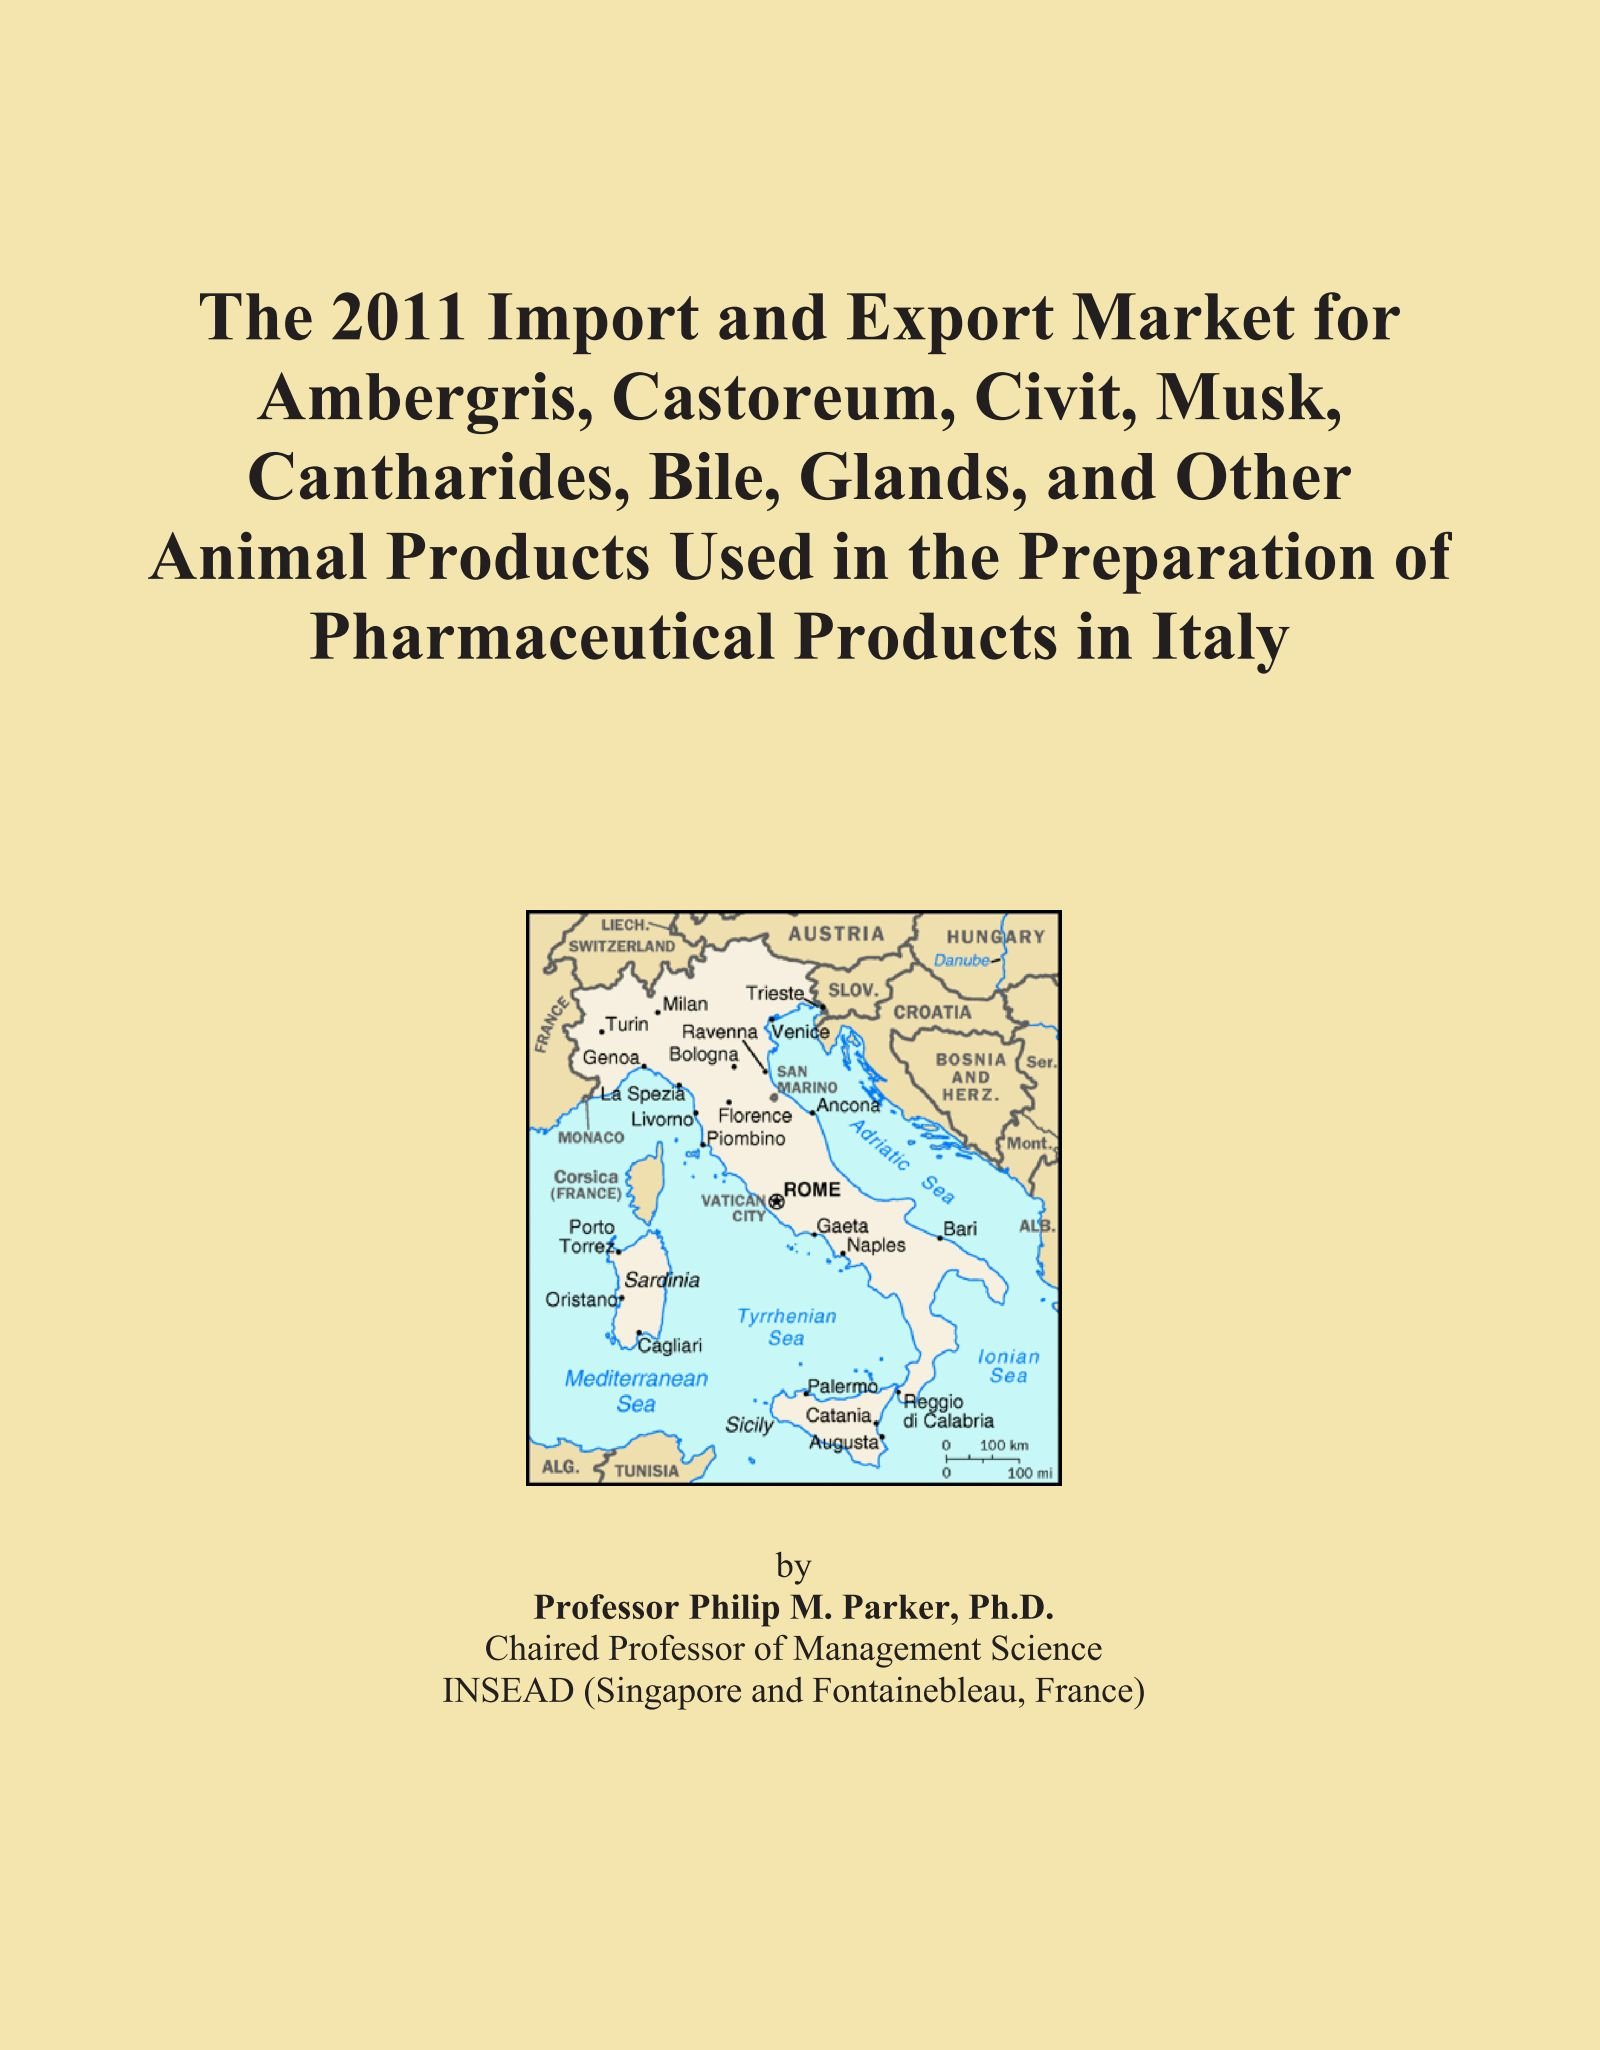 Download The 2011 Import and Export Market for Ambergris, Castoreum, Civit, Musk, Cantharides, Bile, Glands, and Other Animal Products Used in the Preparation of Pharmaceutical Products in Italy PDF